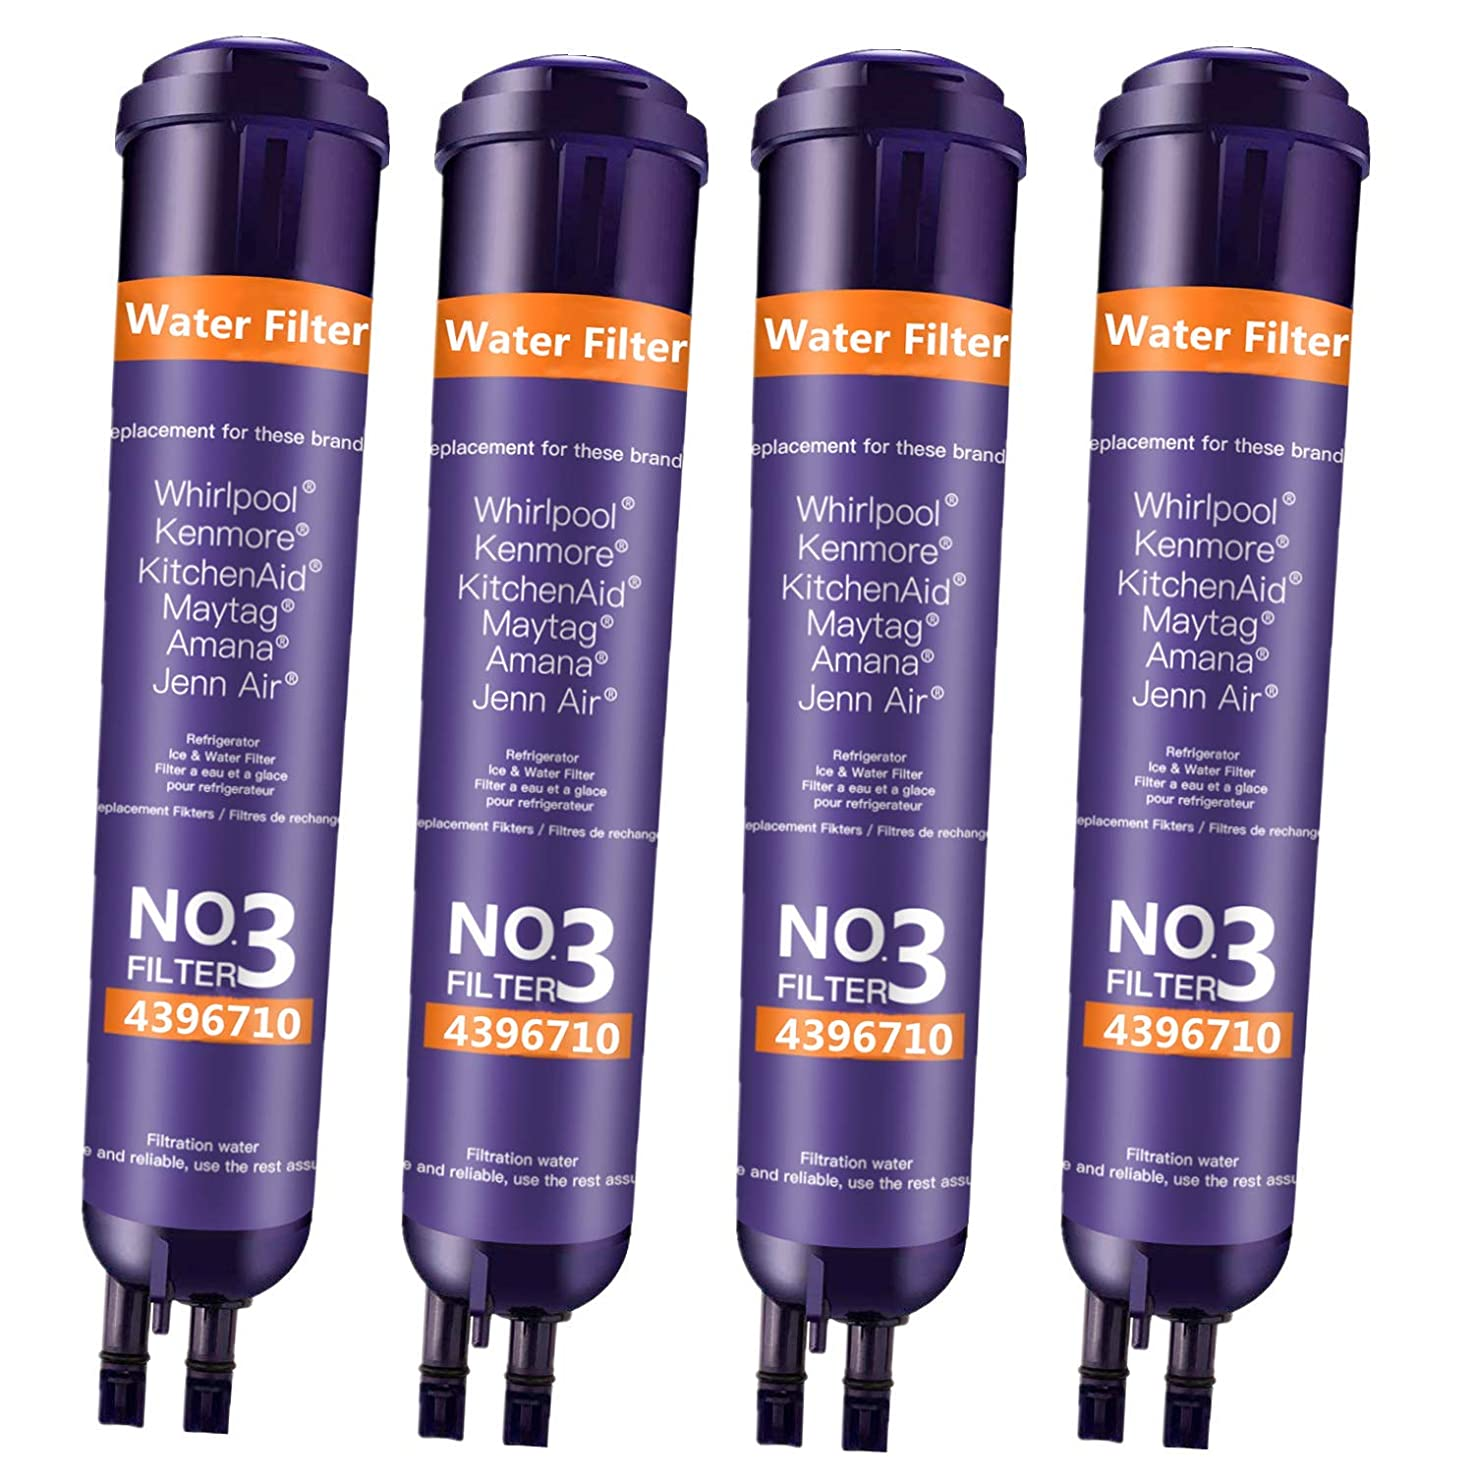 BOYTY Refrigerator Water Filter 9030 Replacement Ken-More 46/9083 9083 46/9030 9030 46/9020 Refrigerator Water Filter Purple(4 Pack)